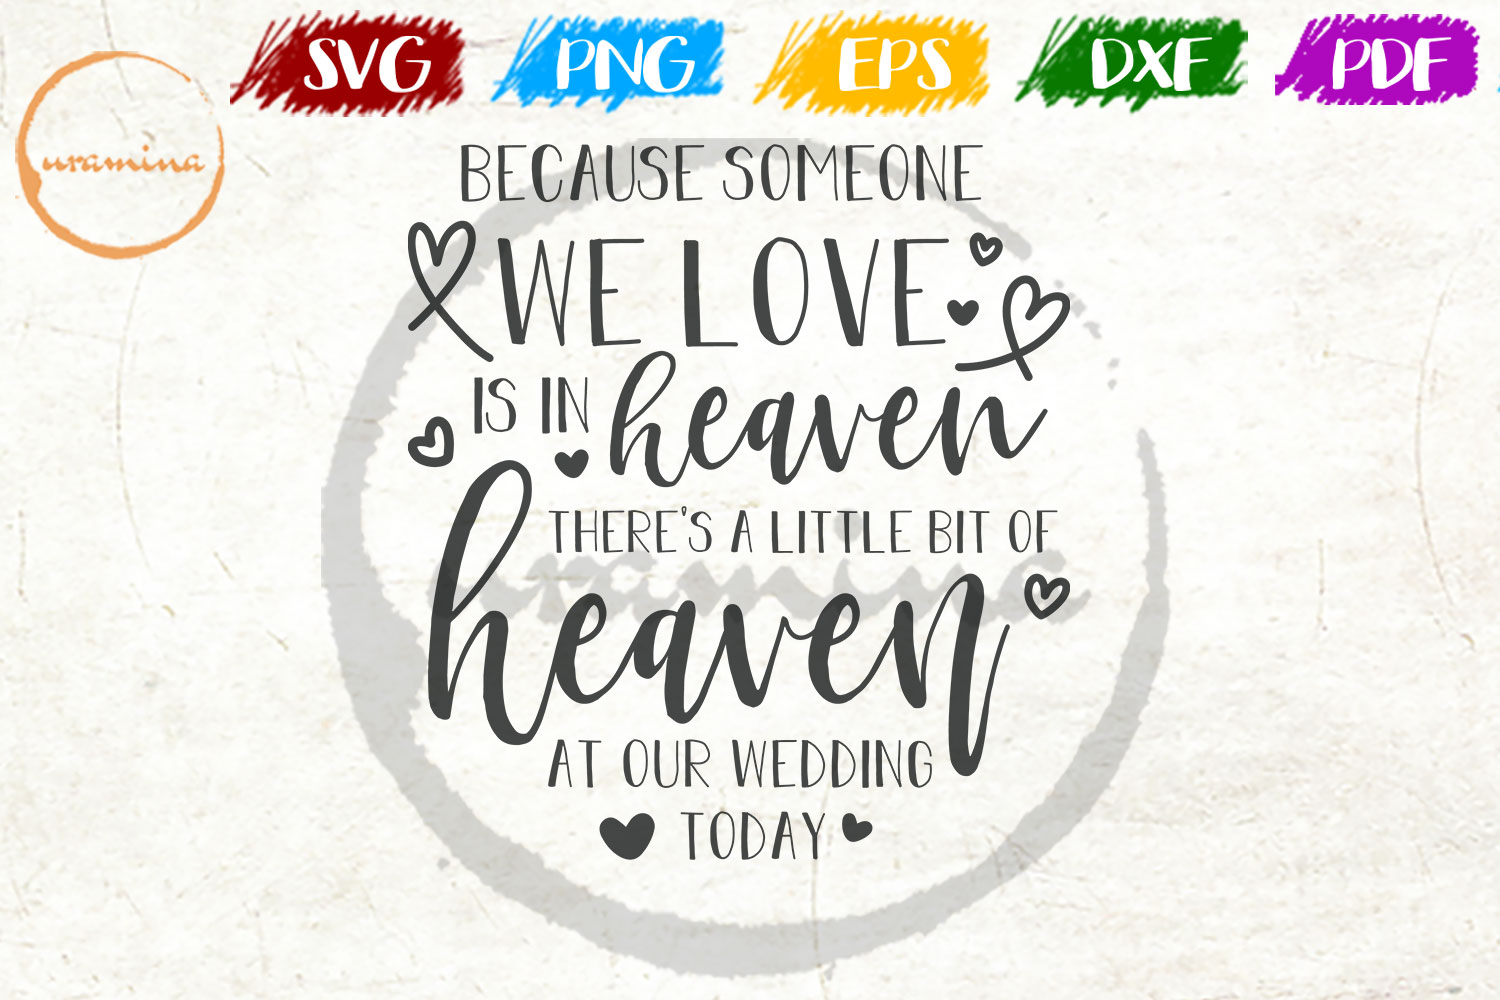 Download Free Because Someone We Love Is In Heaven Graphic By Uramina for Cricut Explore, Silhouette and other cutting machines.